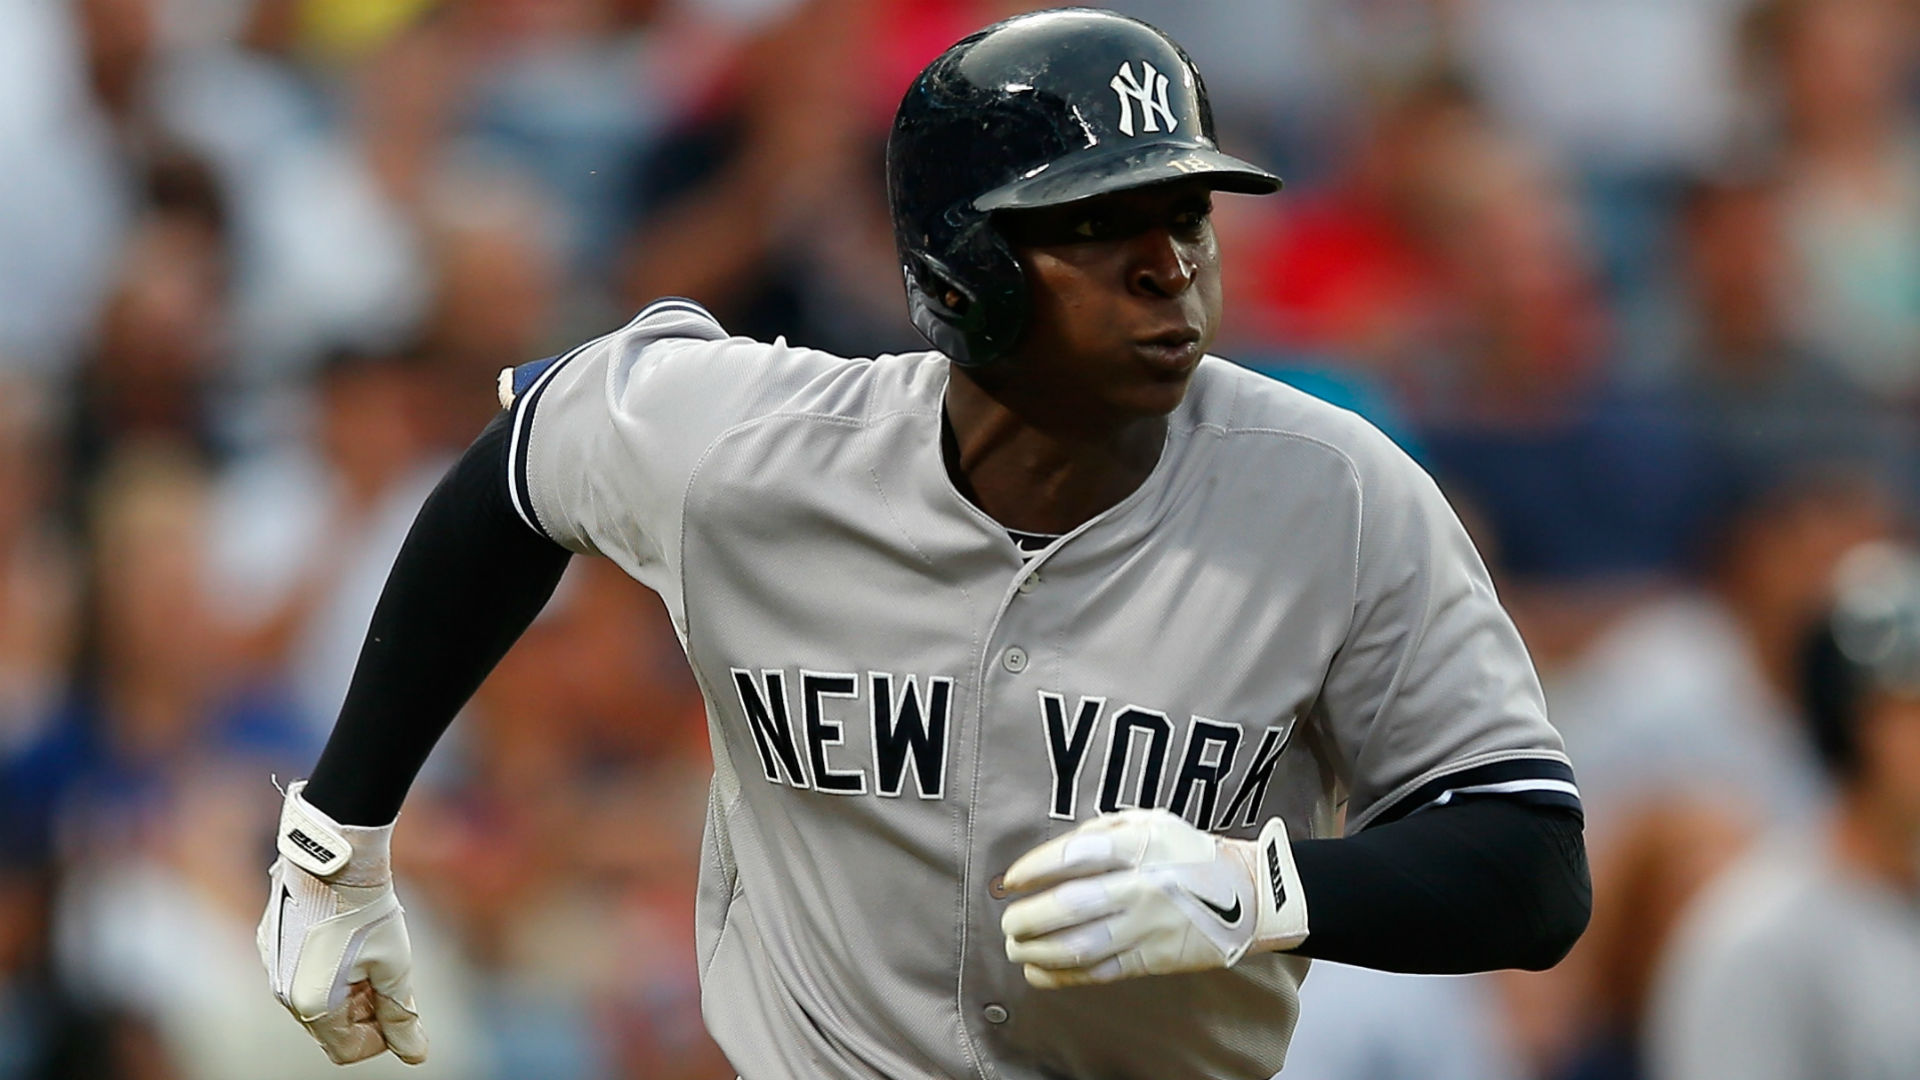 Yanks' Didi Gregorius hurt, leaves WBC